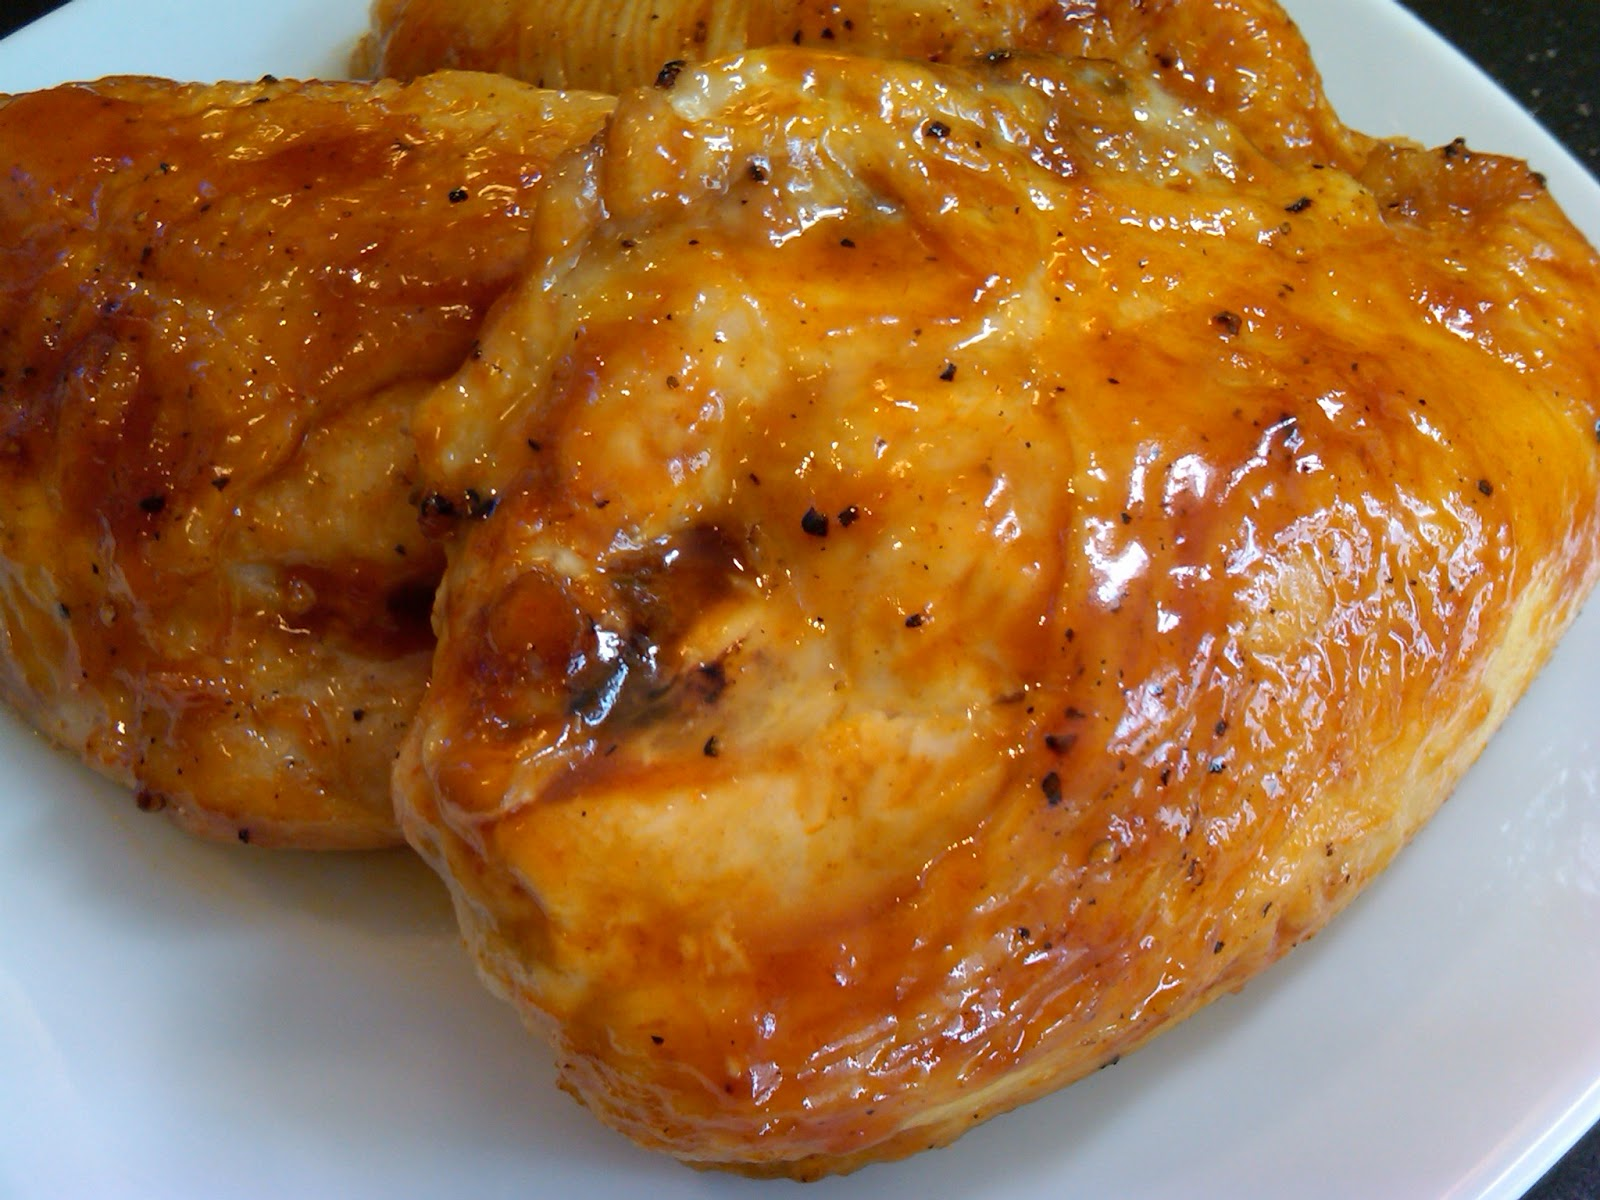 honey glazed chicken 1 2 cup honey 1 4 cup